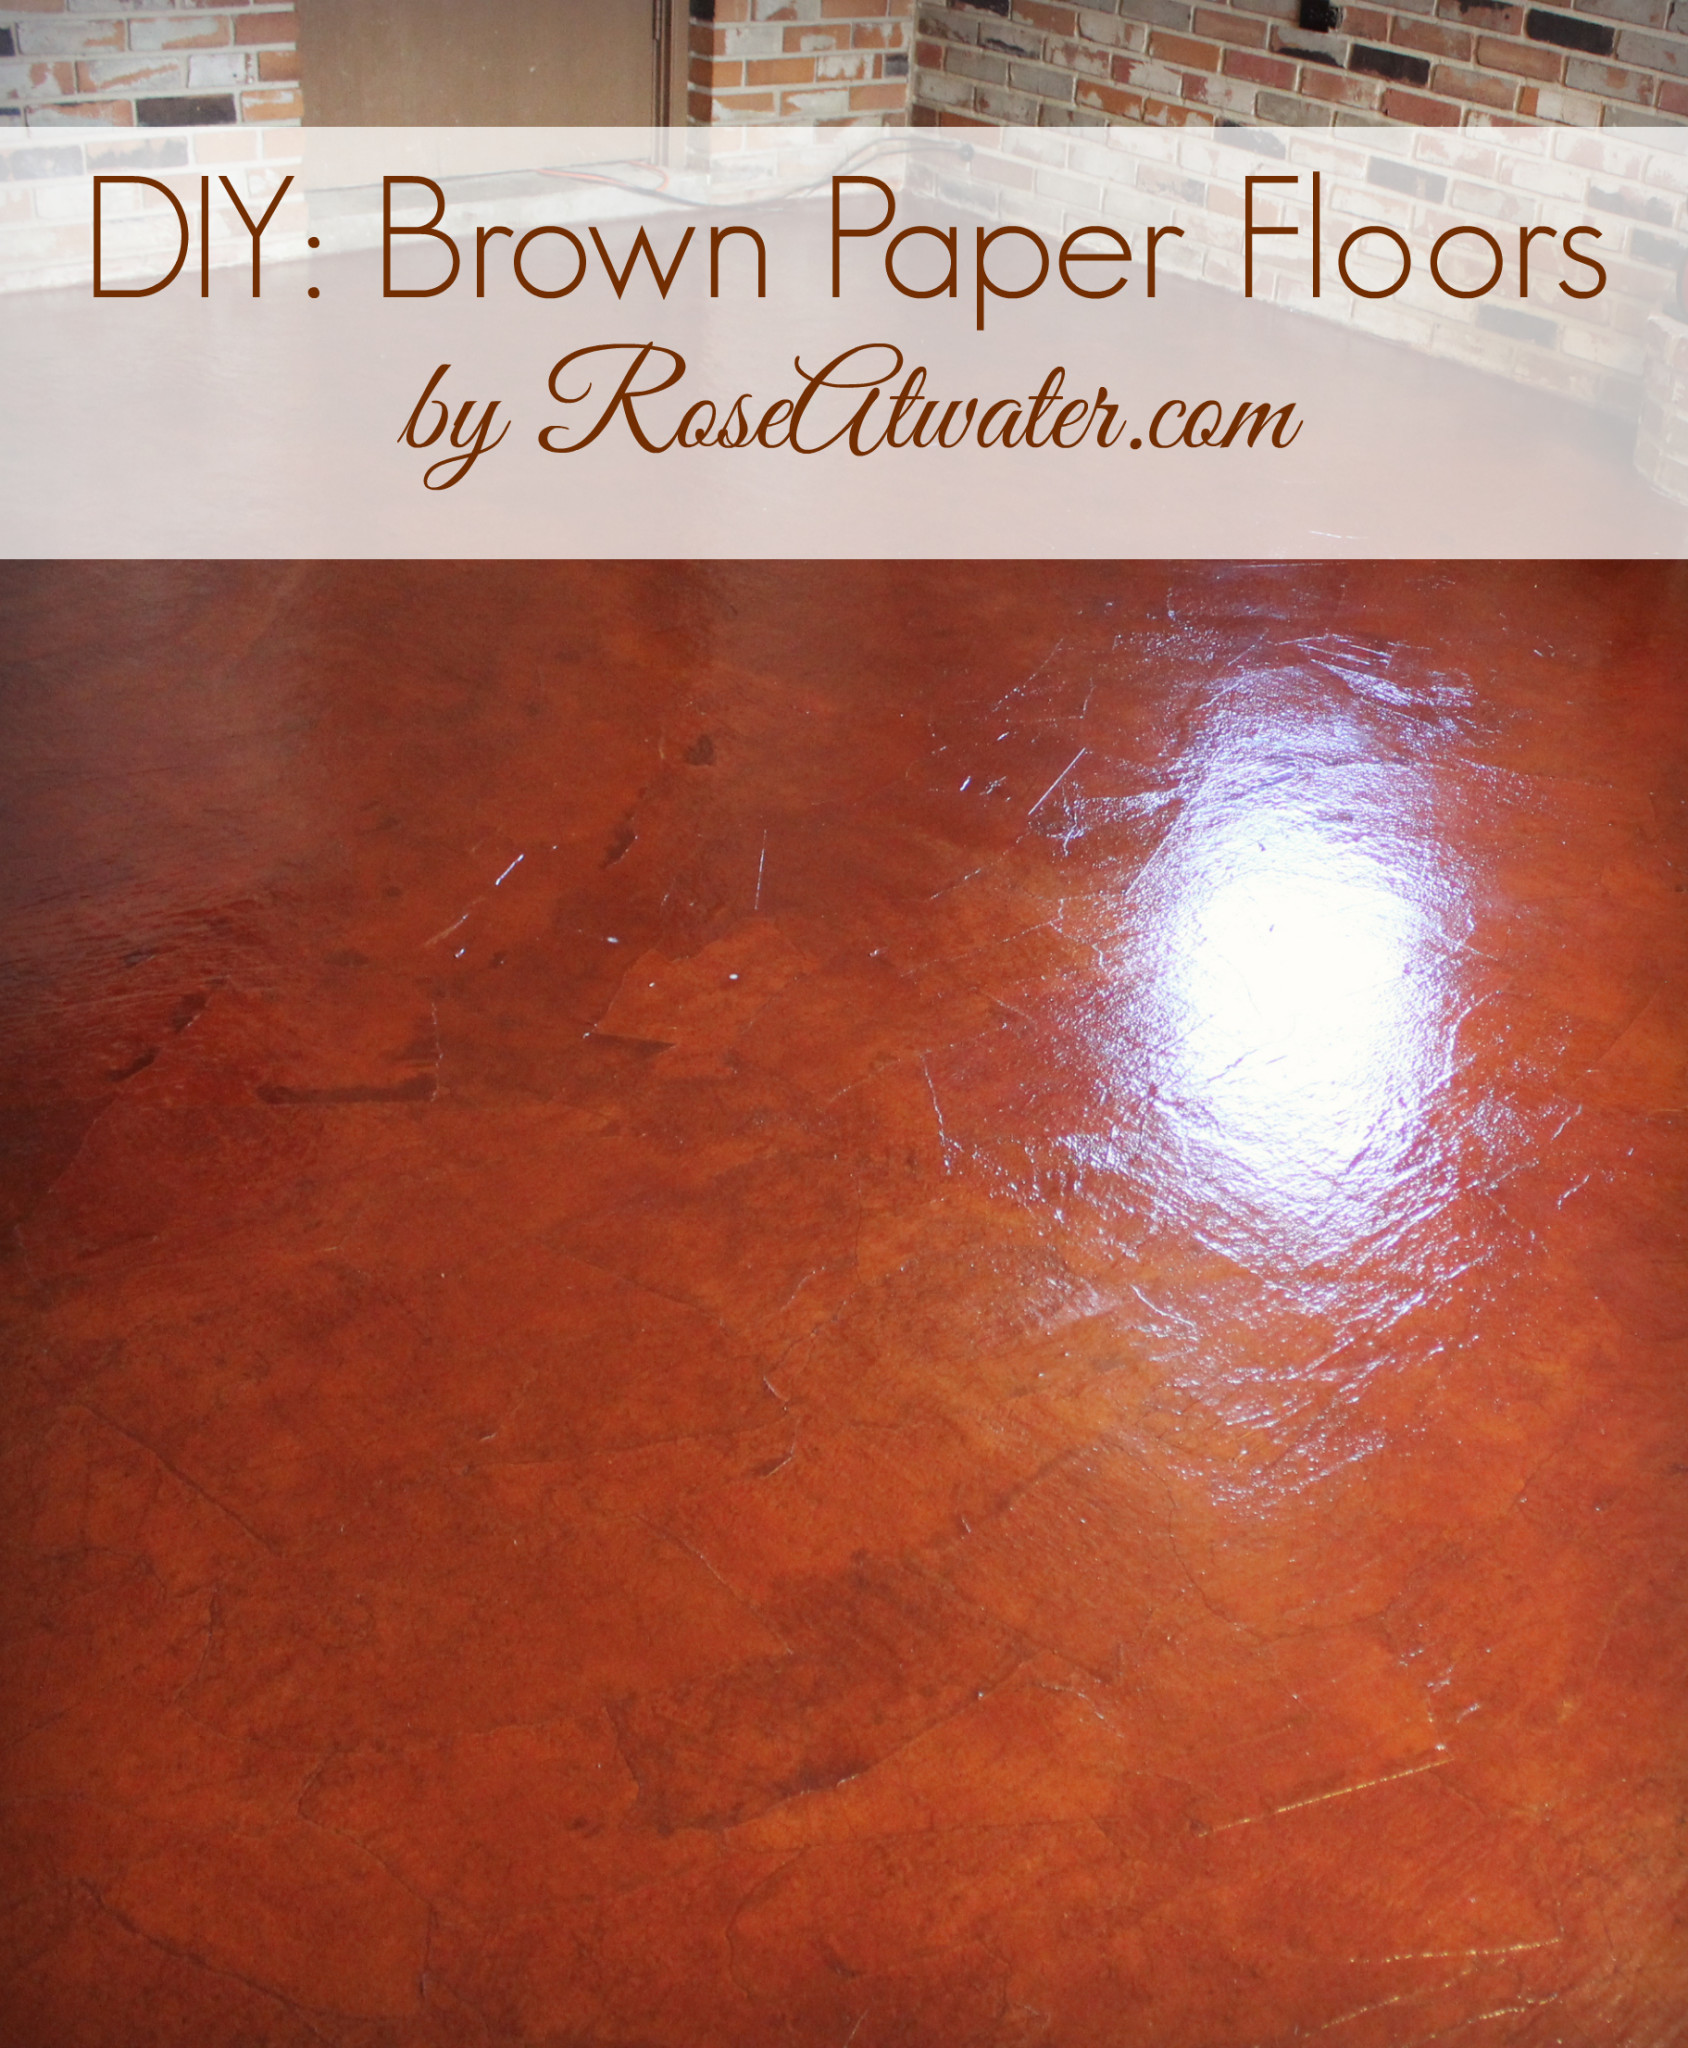 DIY: How to do Brown Paper Floors